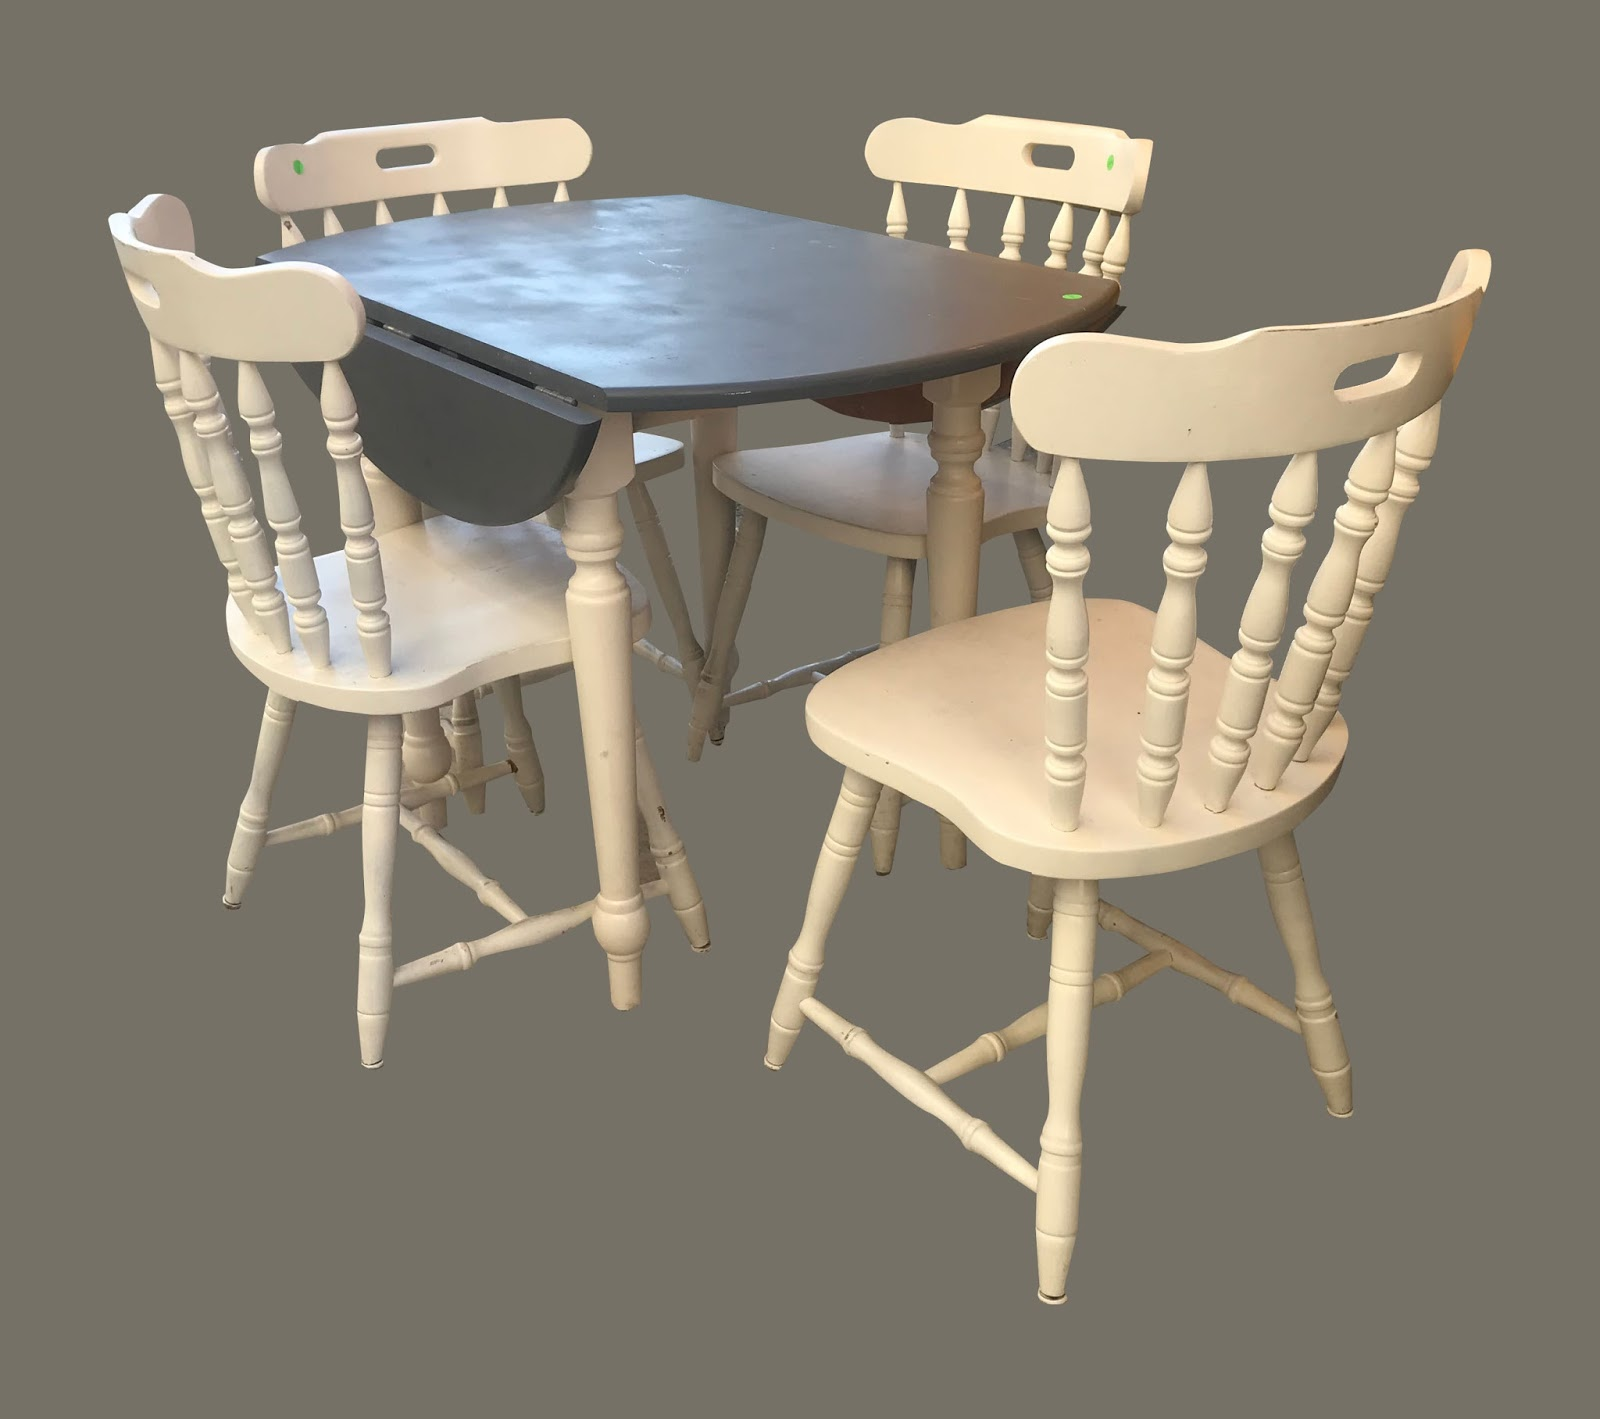 Uhuru furniture collectibles painted table 4 chairs for Cie no 85 table 4